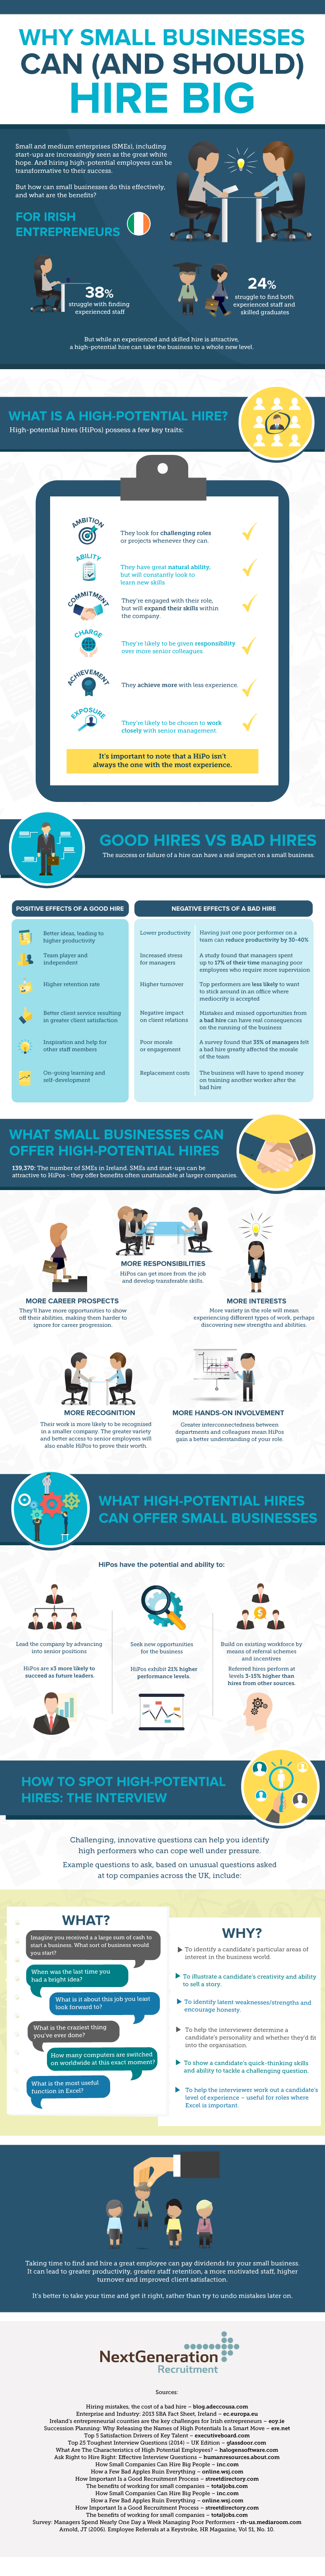 Why Small Businesses Can (and Should) Hire Big